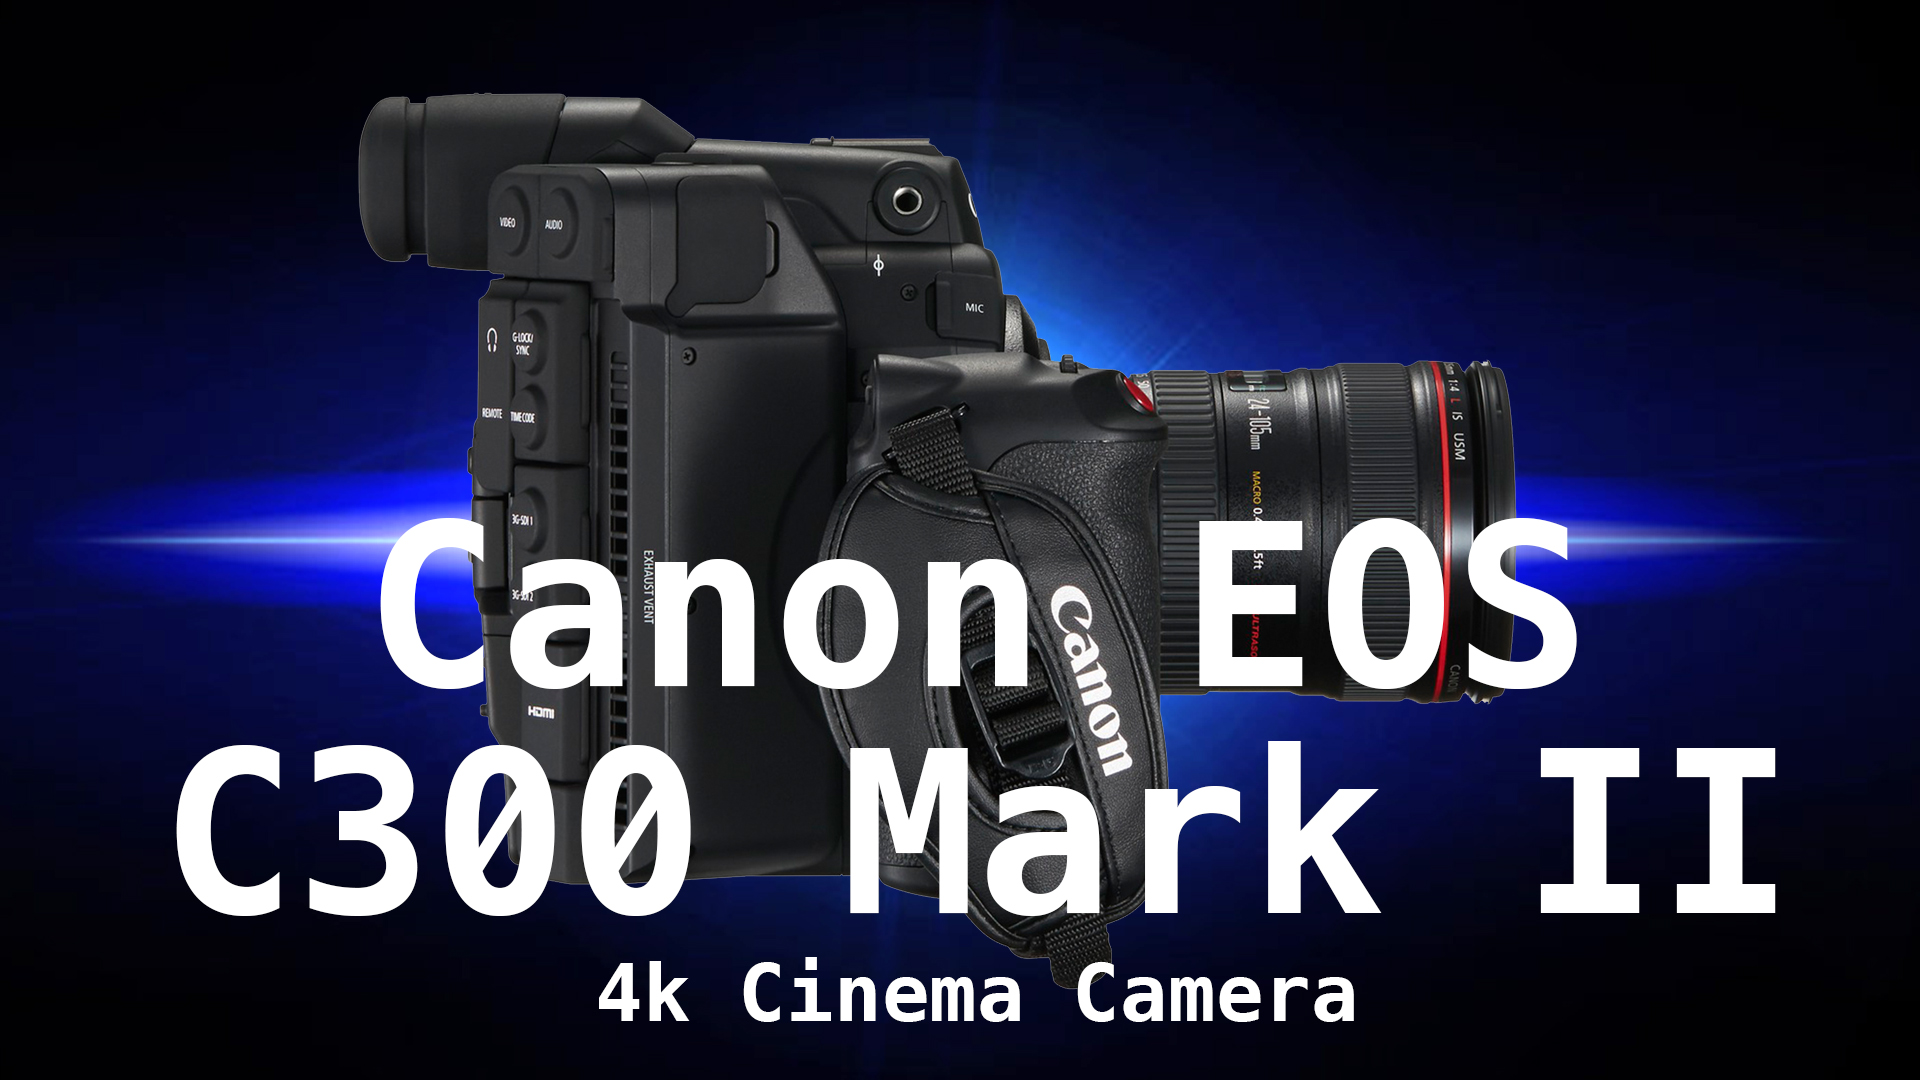 New Canon EOS C300 Mark II $16,000 4K Cinema Camera — cameraville